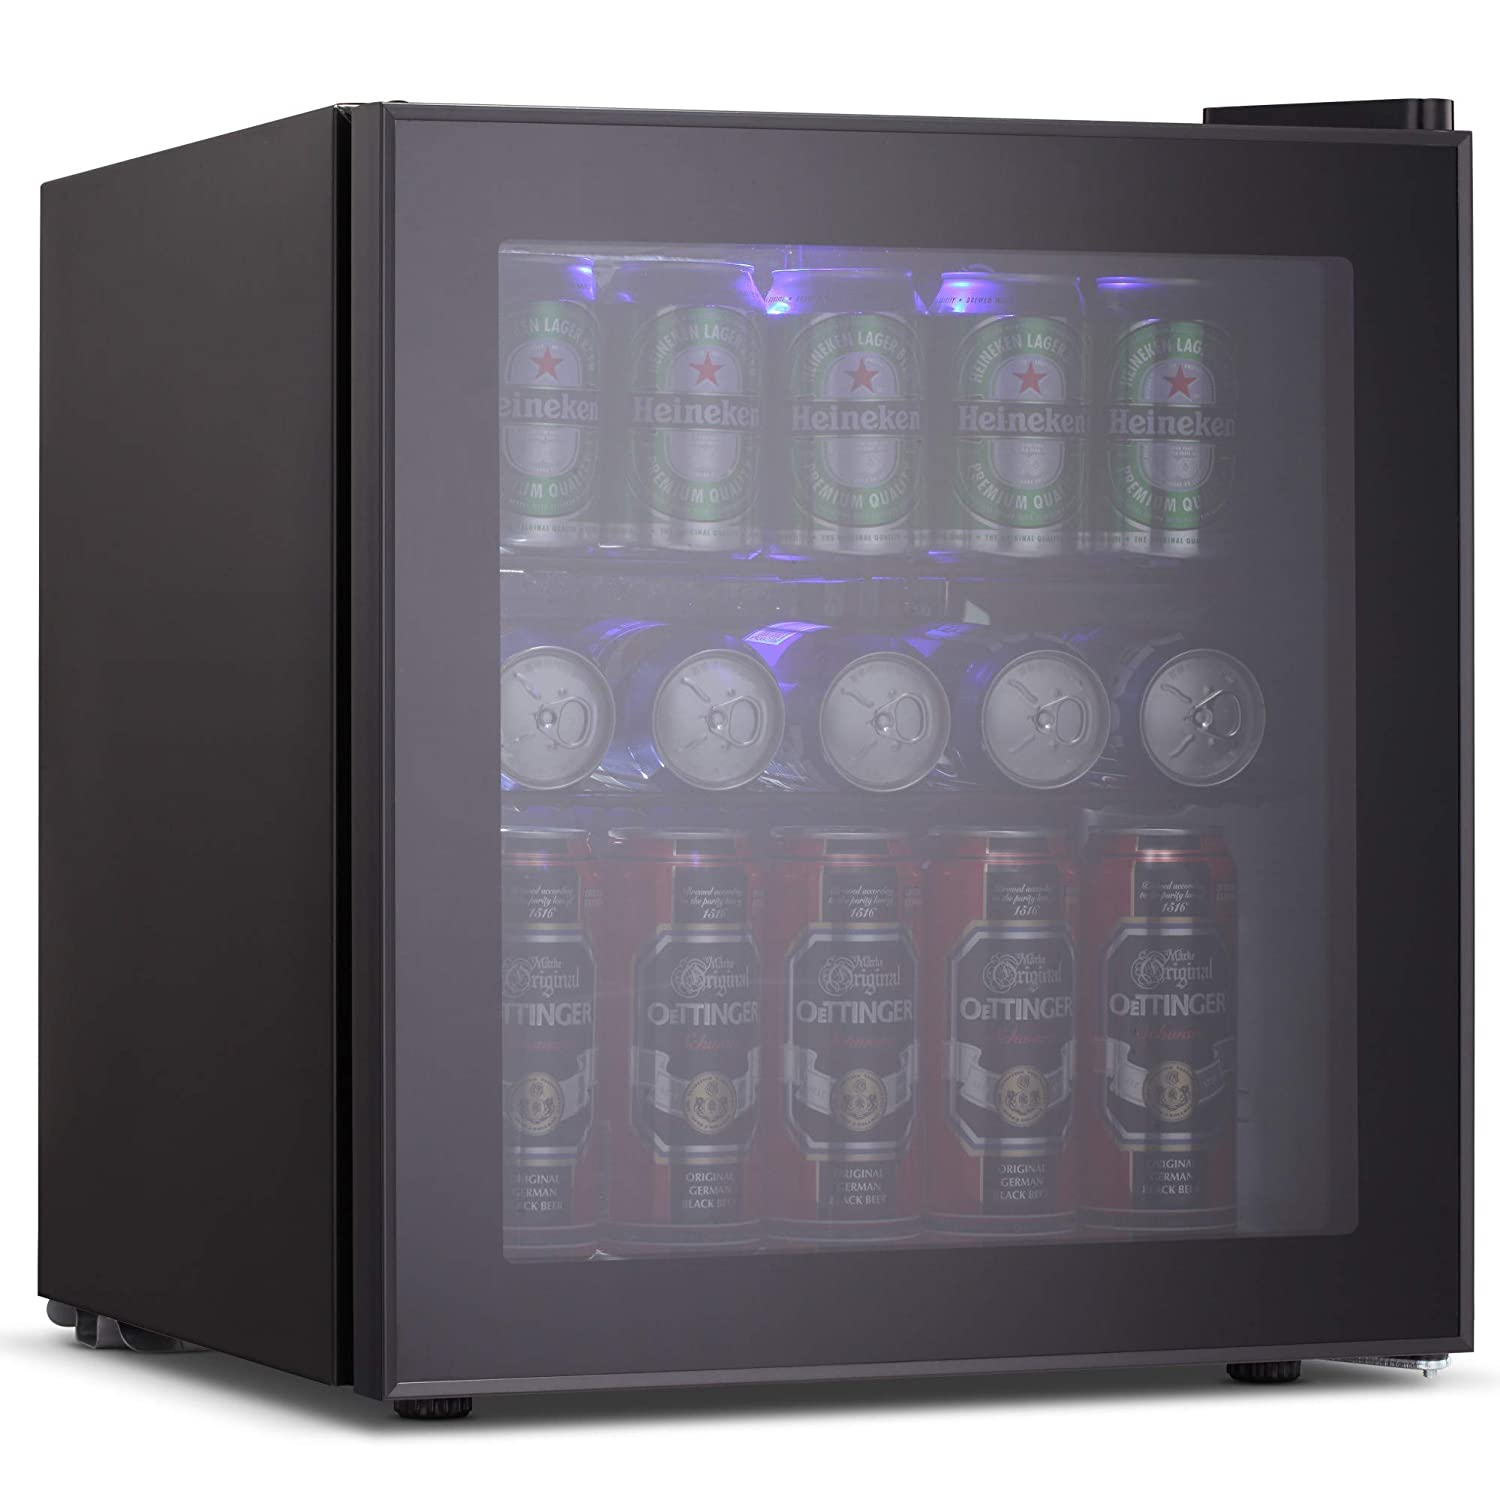 Joy Pebbe Beverage Cooler and Refrigerator with Glass Door (1.6 cu.ft, Black)